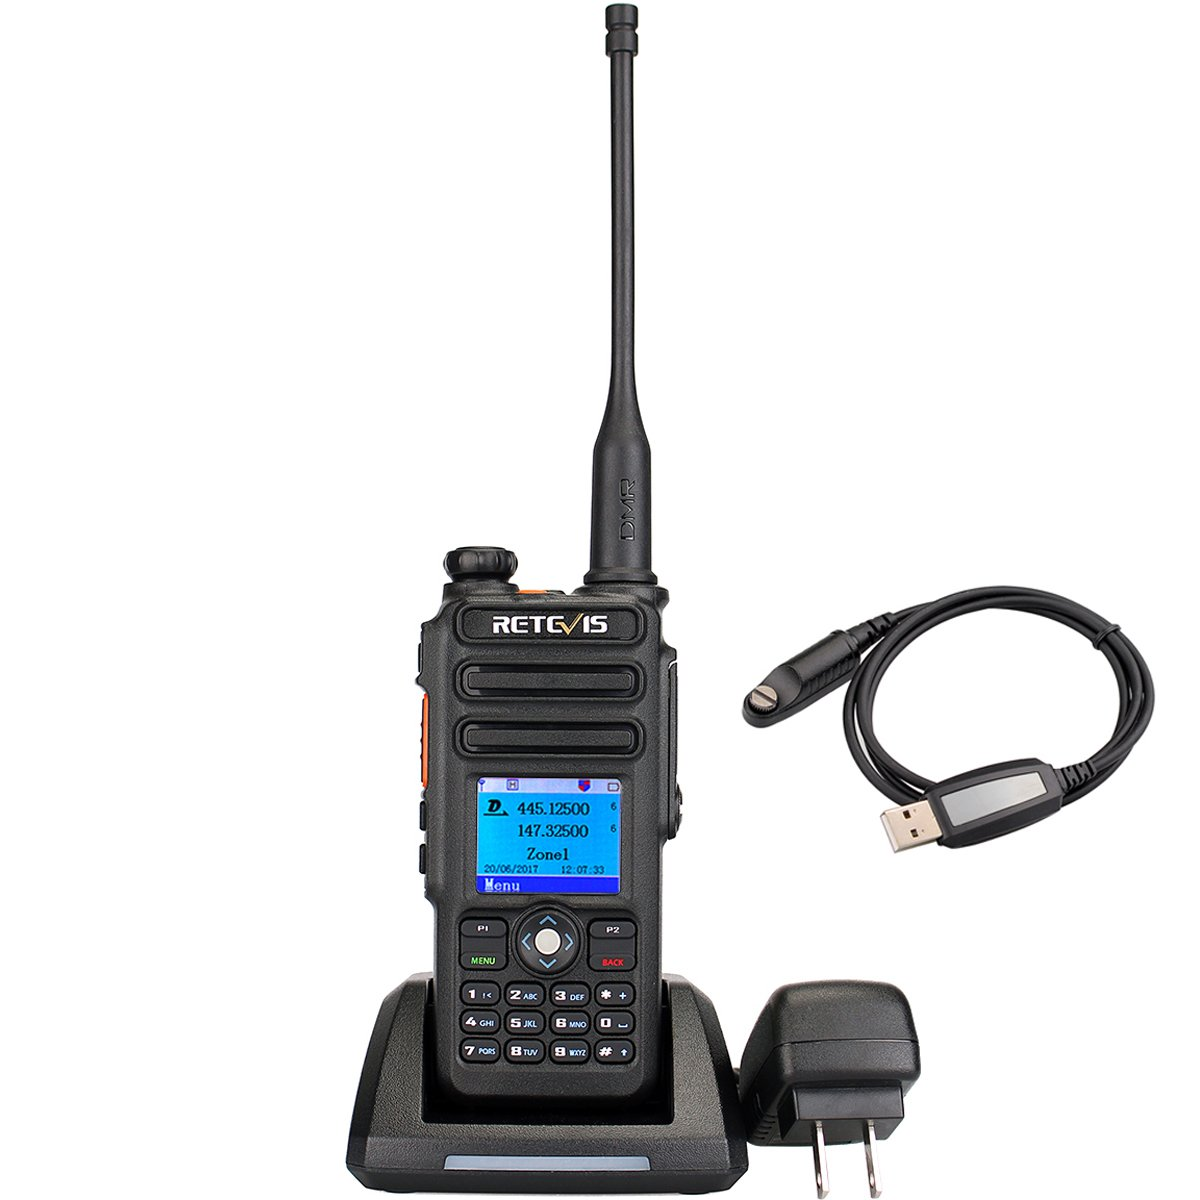 Retevis RT82 IP67 Waterproof Dual Band DMR Digital/Analog Two Way Radio 5W 136-174MHZ/400-480MHZ 3000 Channels 10000 Contacts Ham Amateur Radio with Record Function and Programming Cable